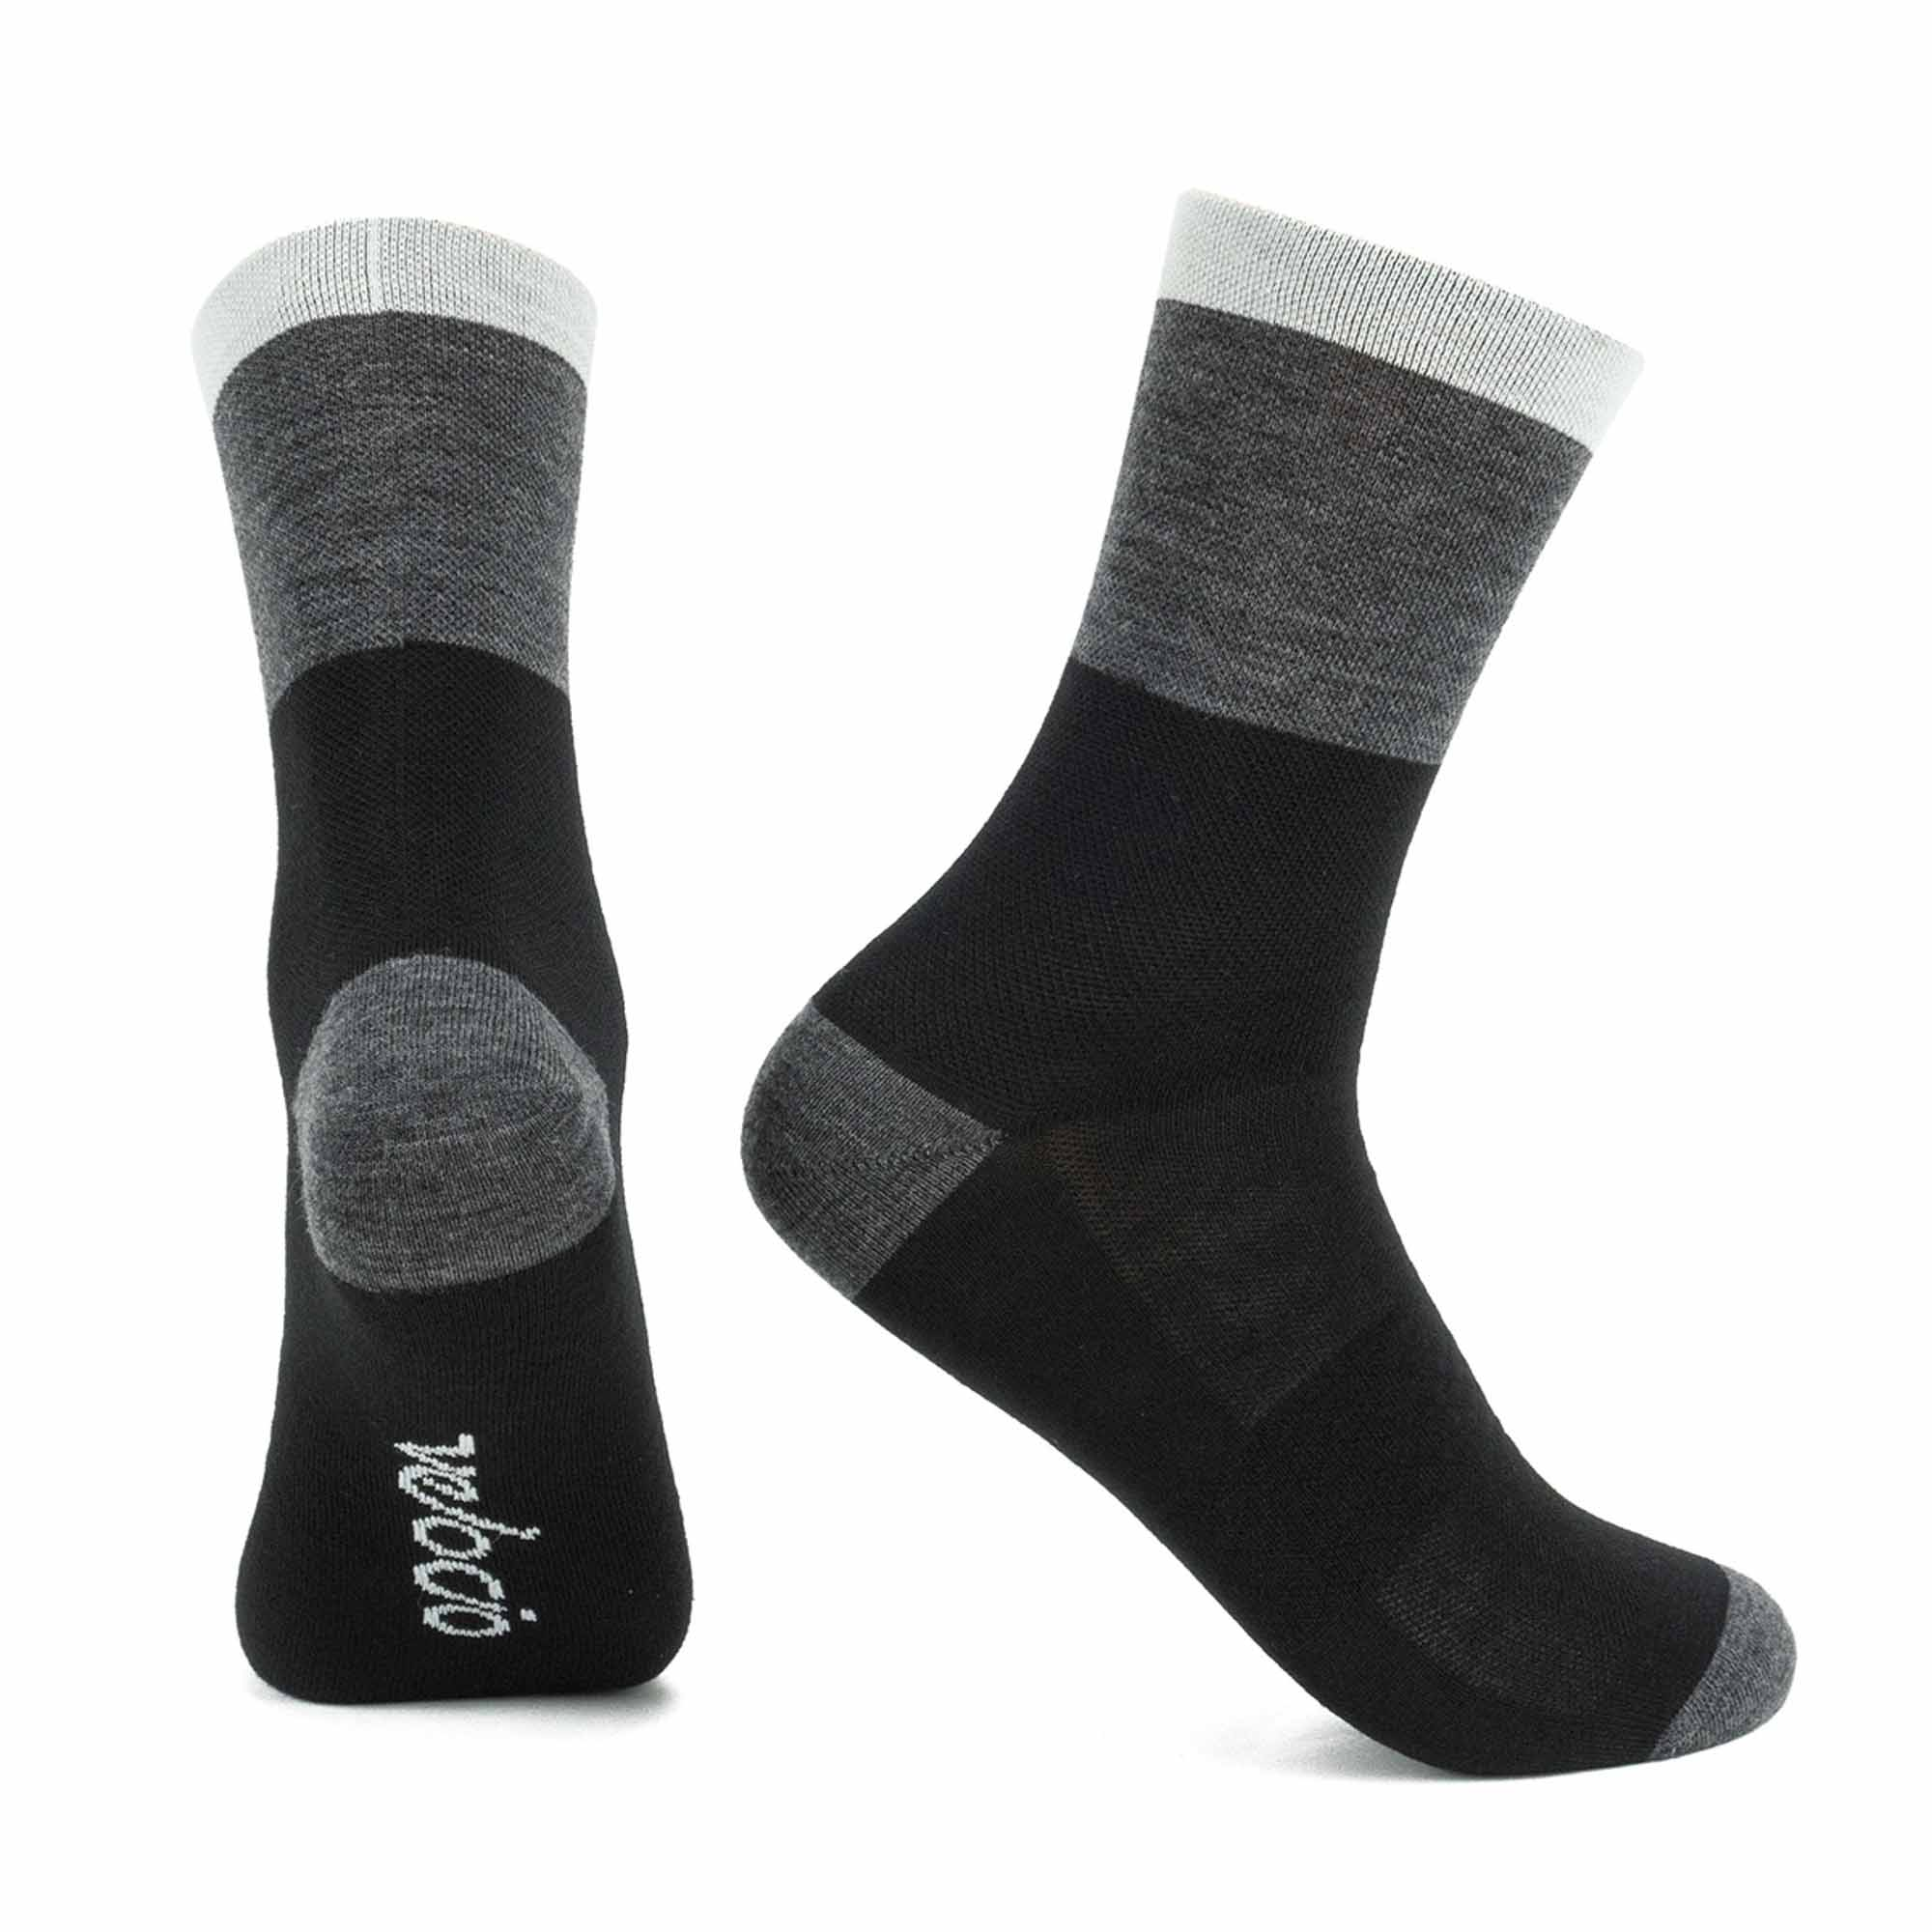 Tricolor Signature Wool Sock